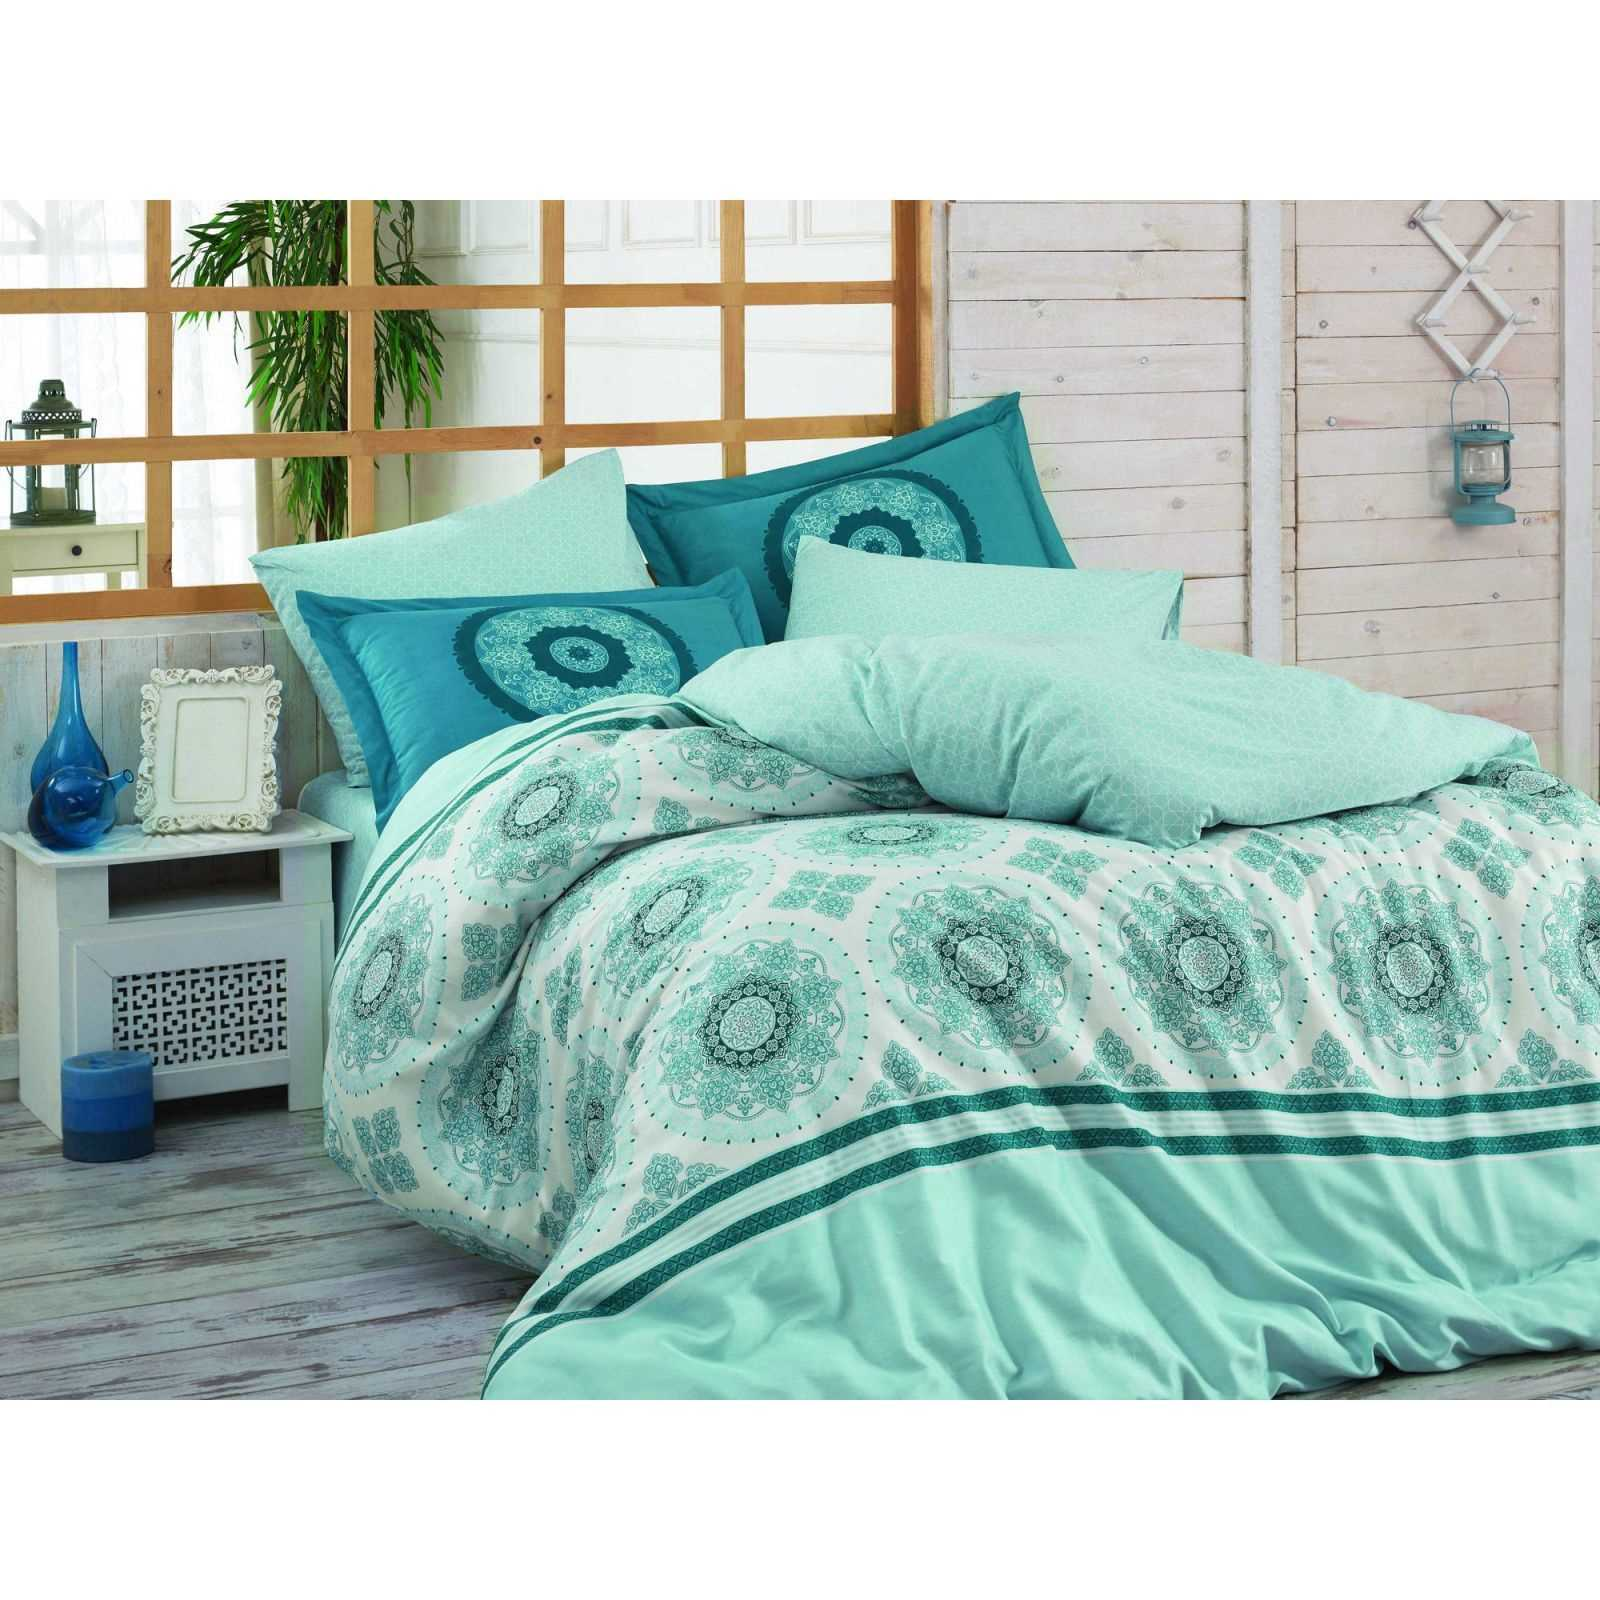 en vogue parure de lit en popeline de coton turquoise brandalley. Black Bedroom Furniture Sets. Home Design Ideas